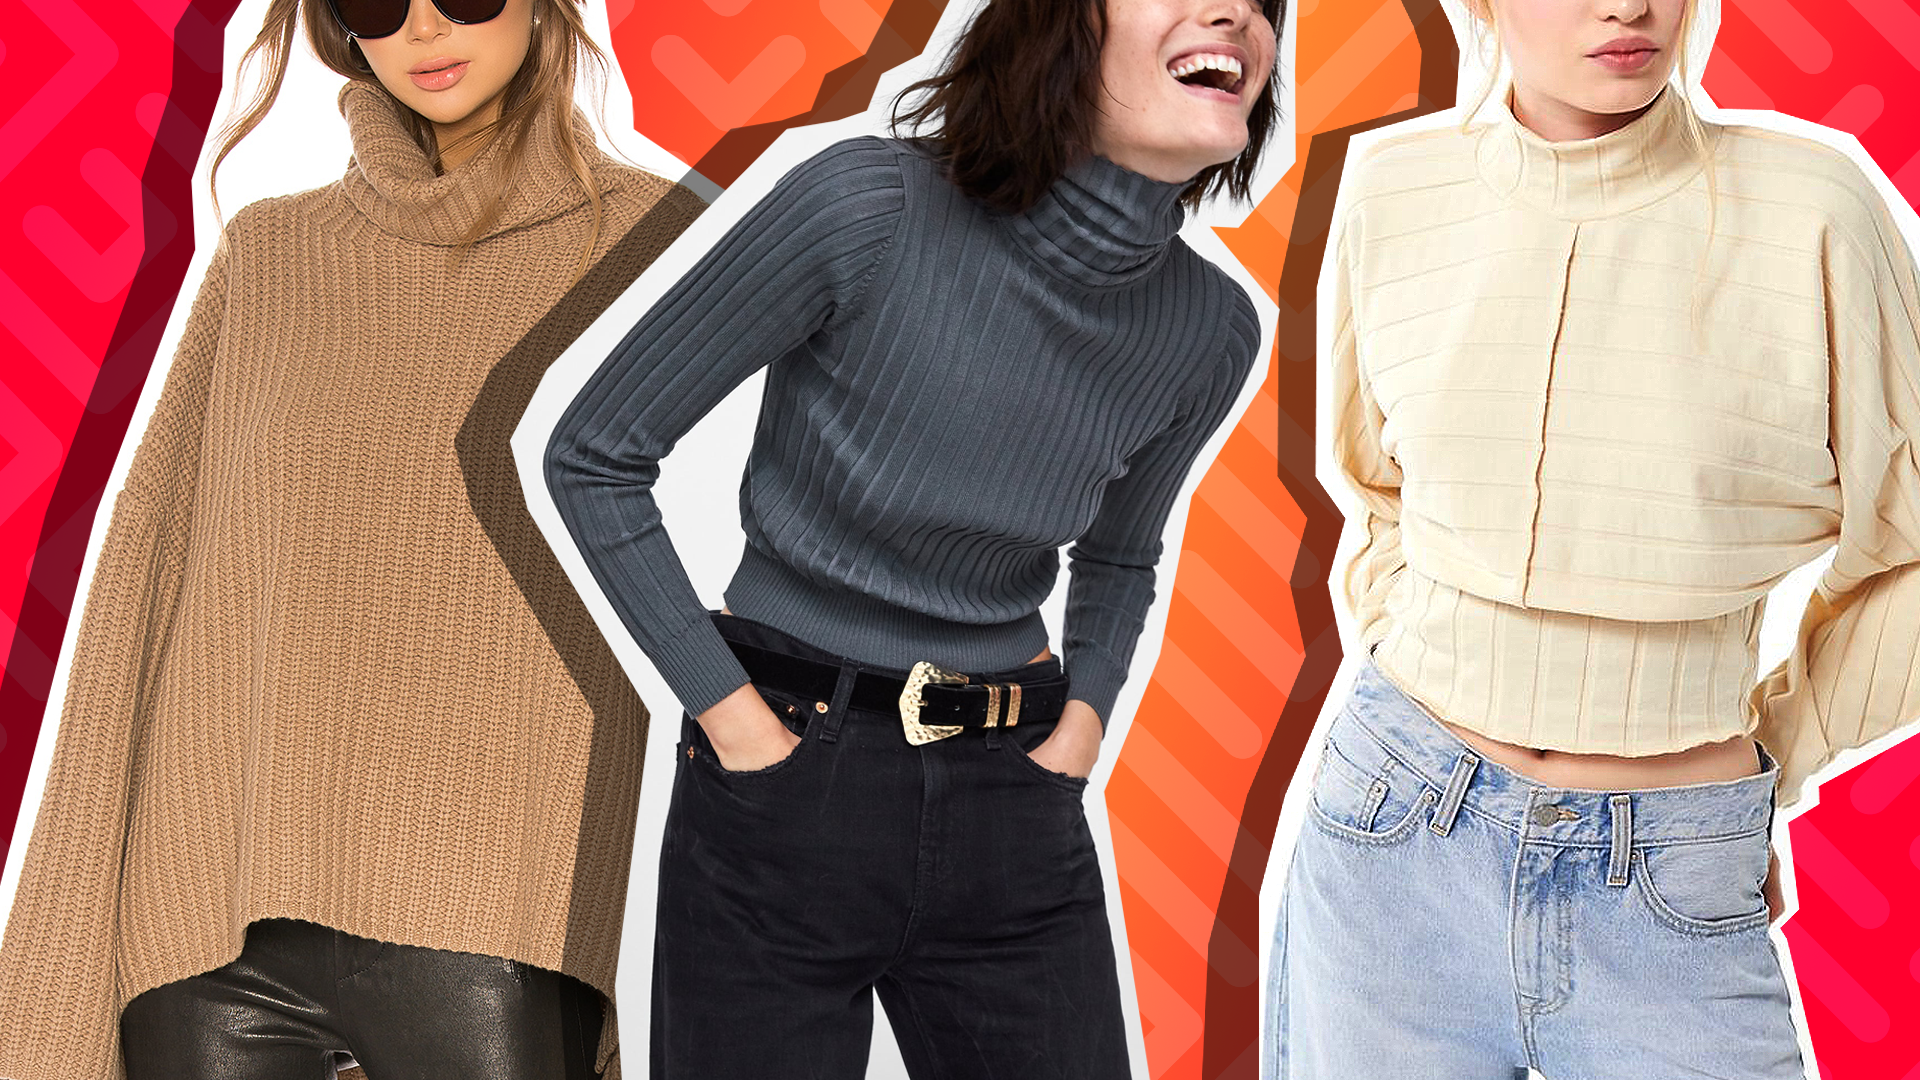 The Underrated Sex Appeal of the Turtleneck